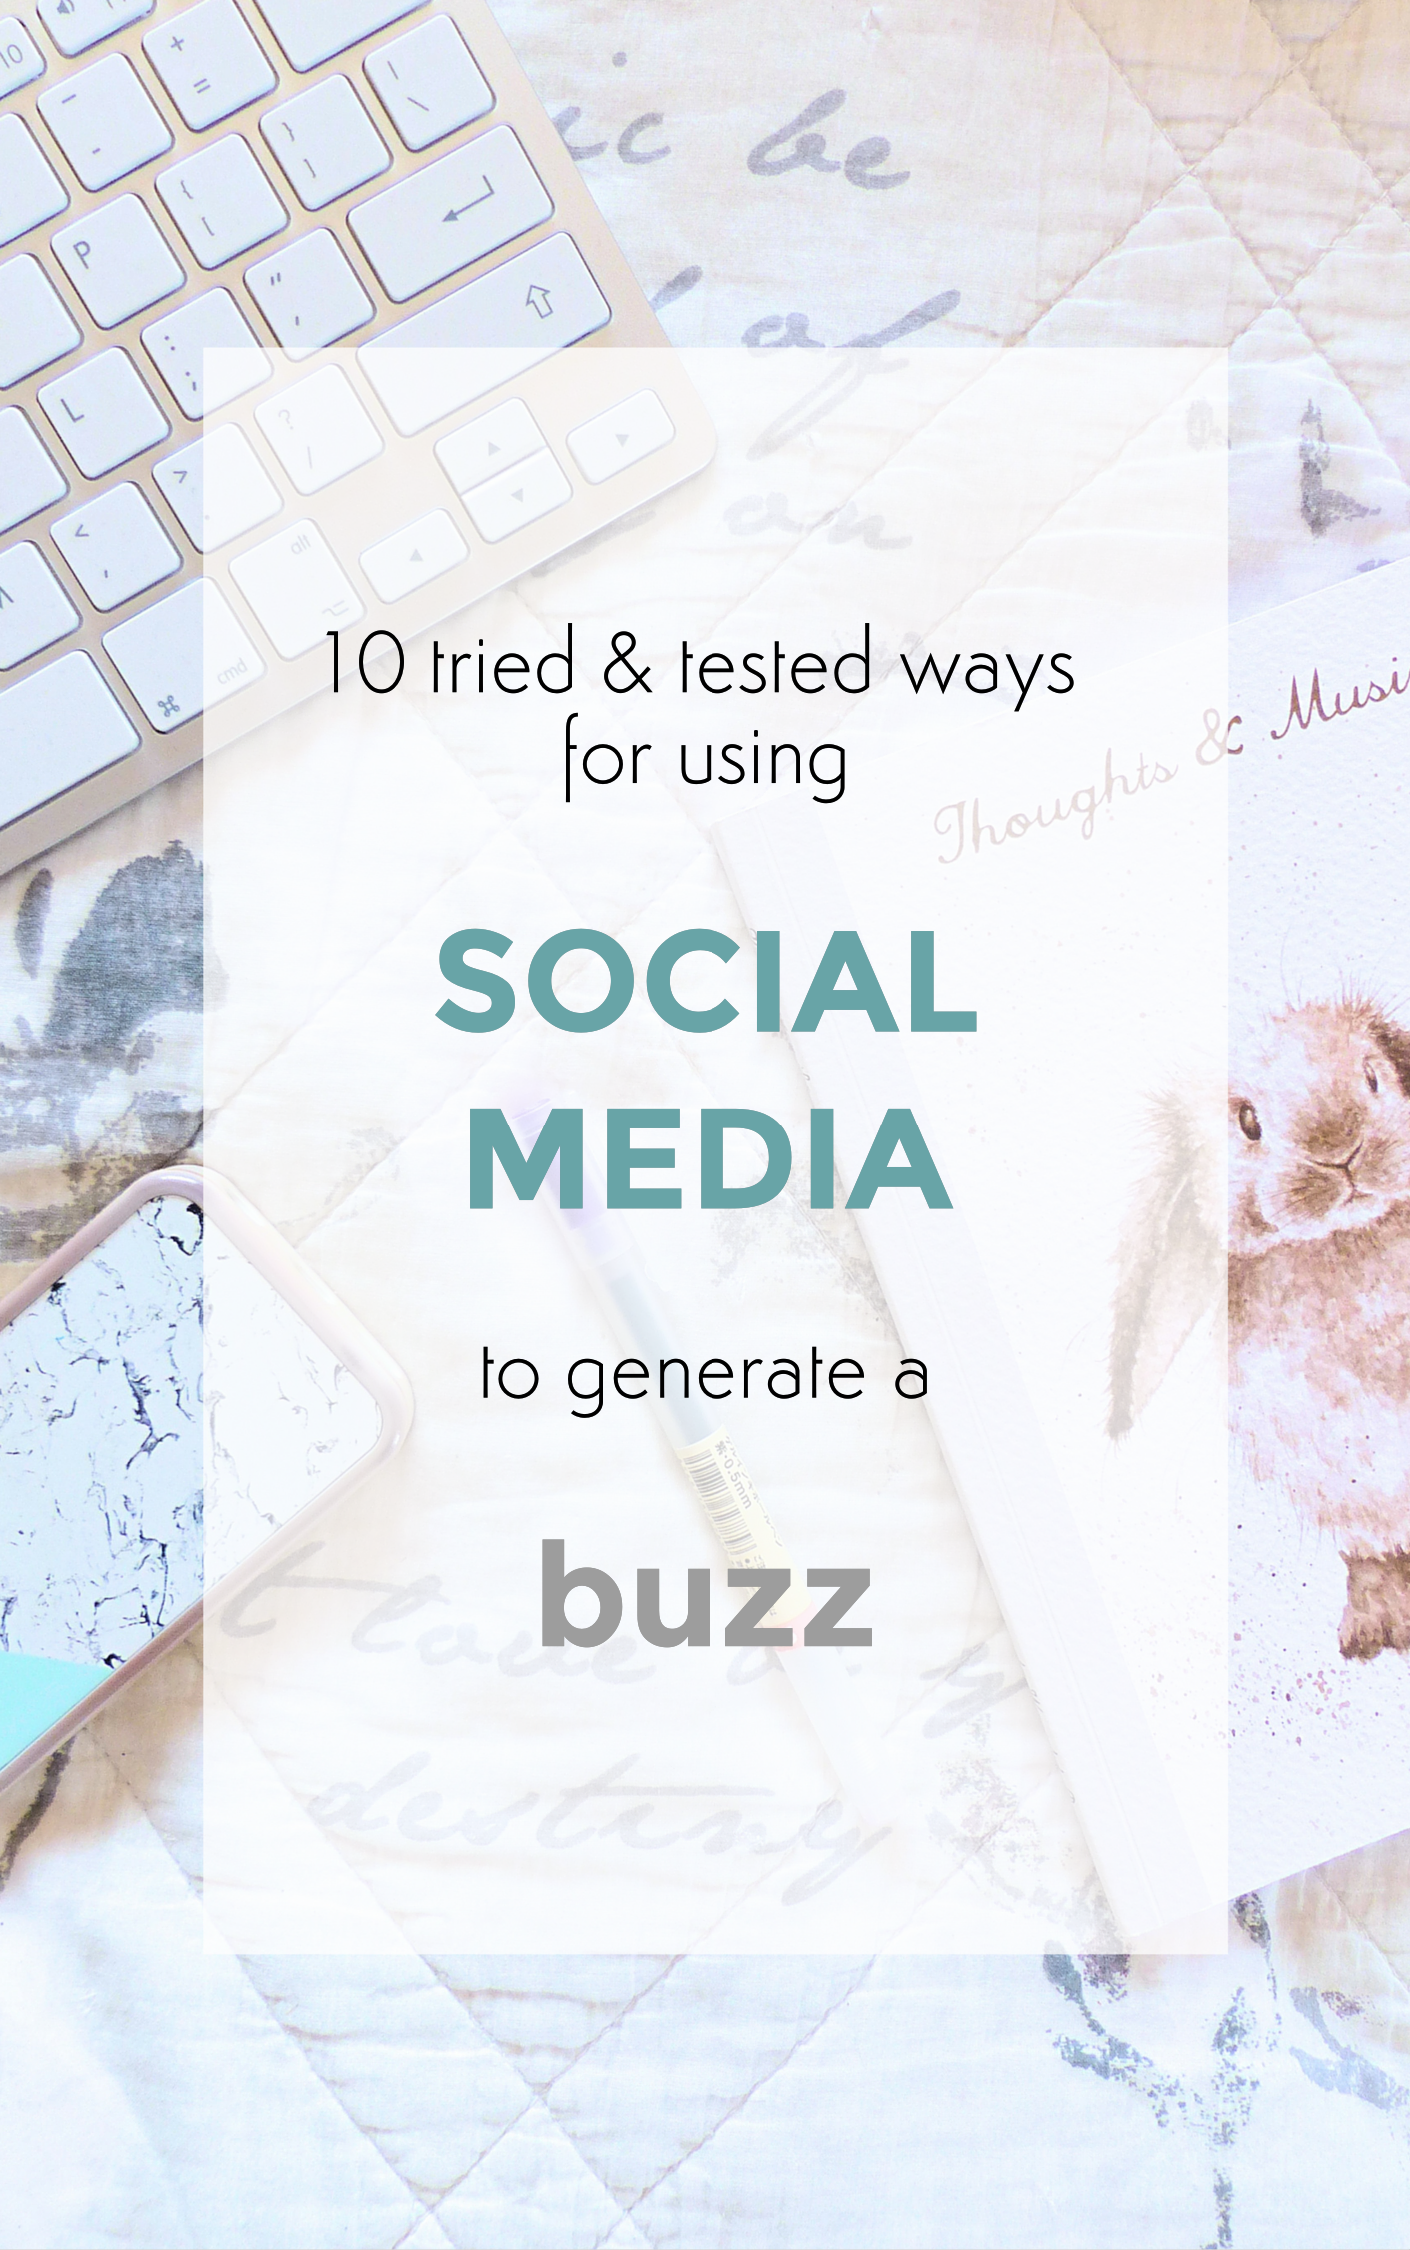 10 tried & tested ways for using social media to generate a buzz